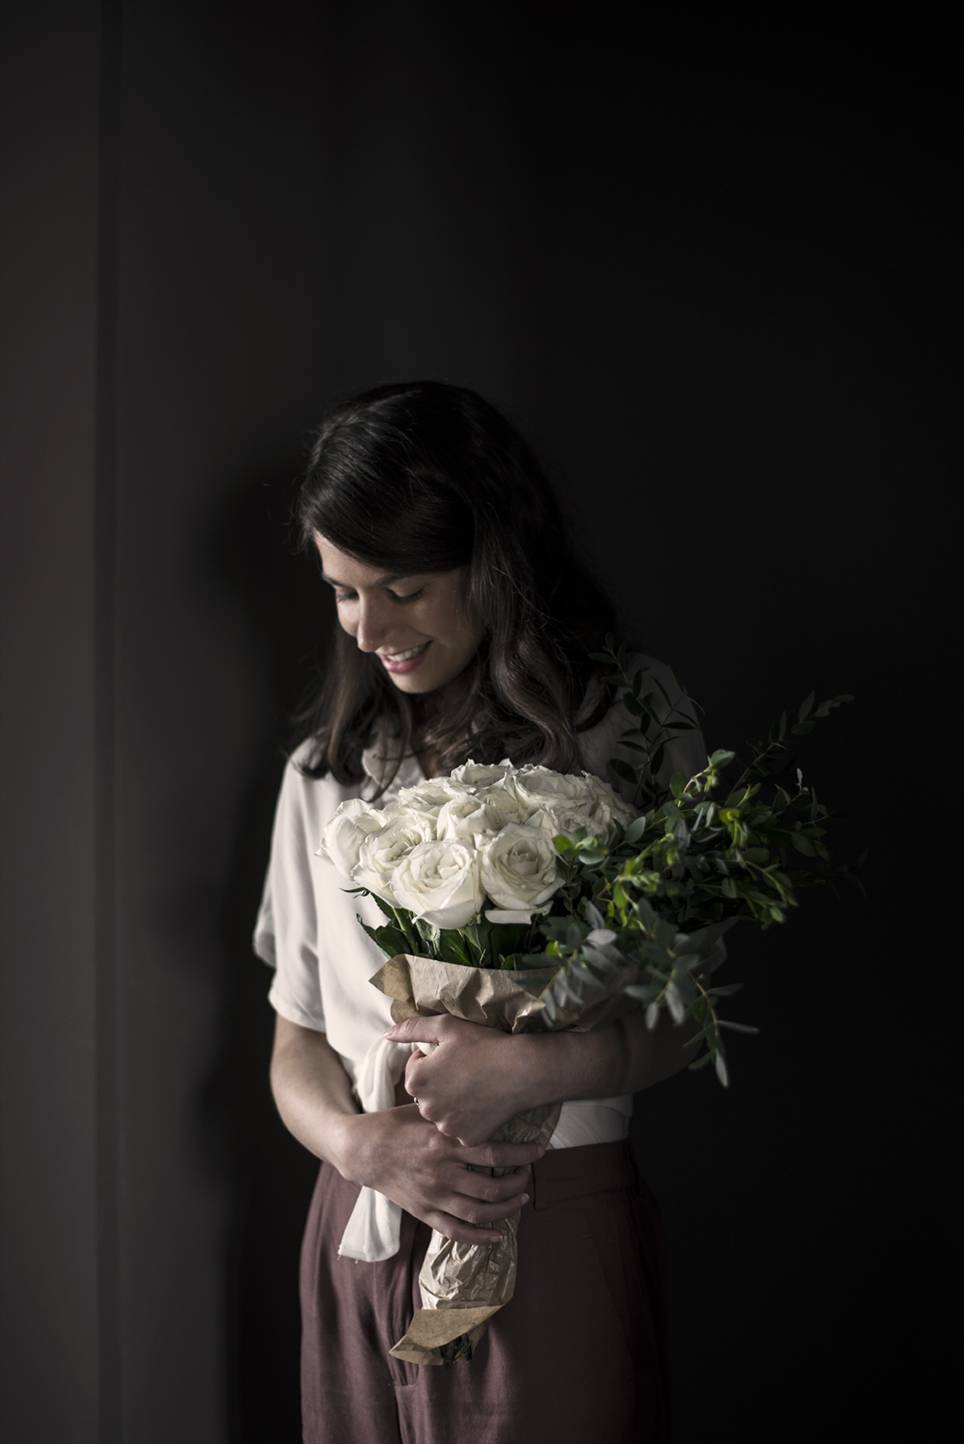 portrait woman with white roses